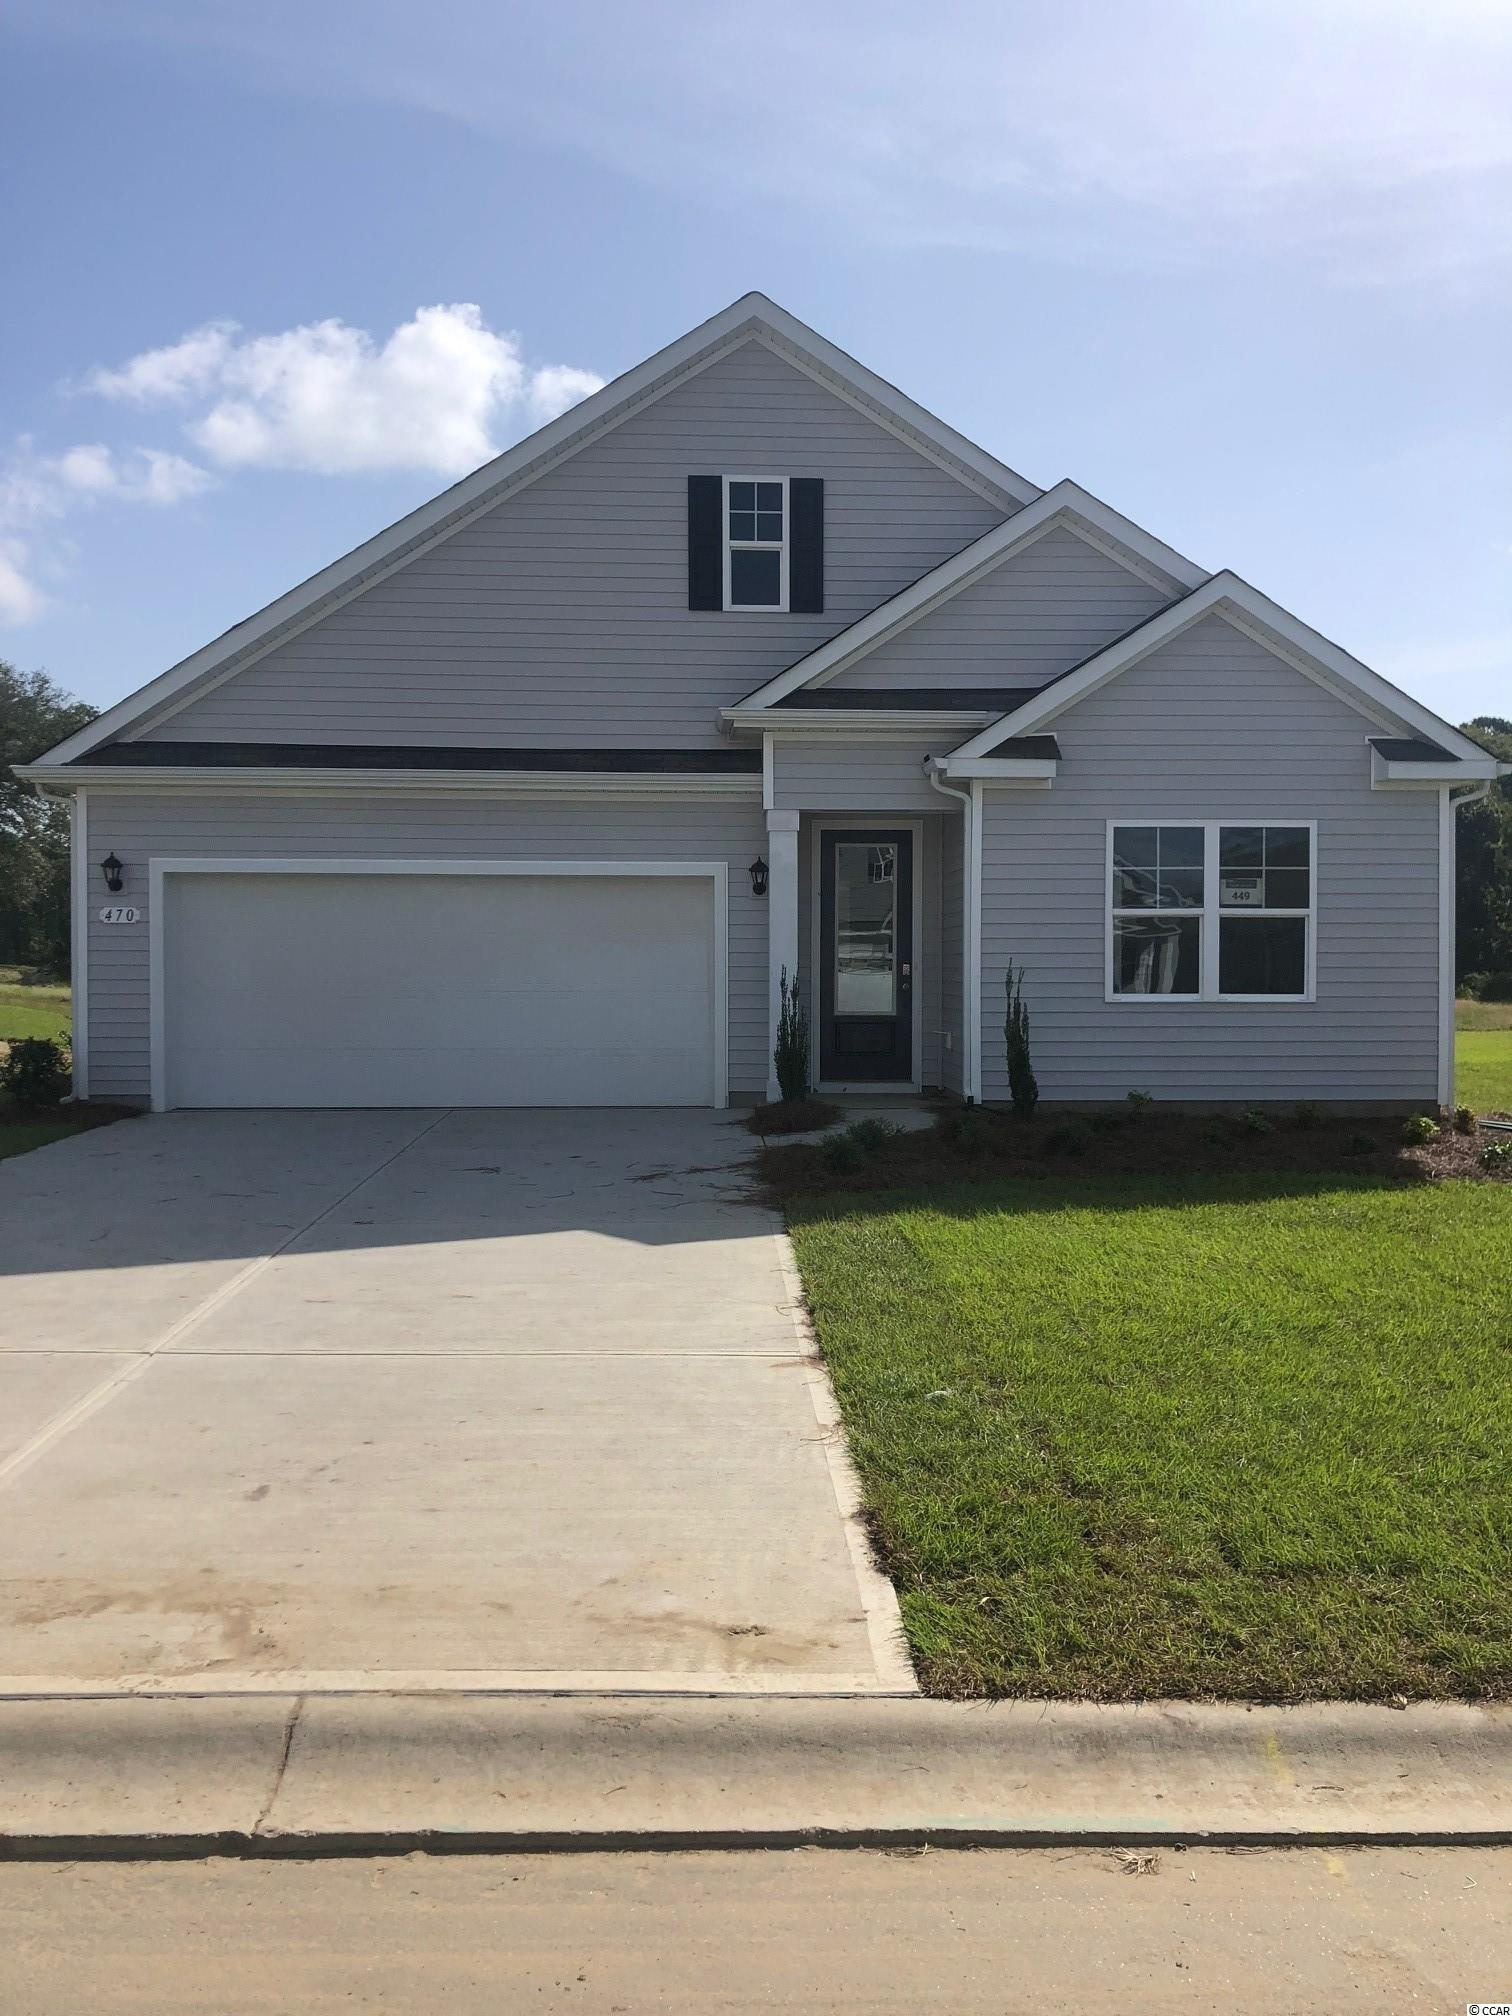 "New phase now selling in Heather Glen! This is America's Smart Home! Lock or unlock your front door, control the the thermostat, and see who is ringing your door bell, all from your smart phone! This is just one of the many features this home offers. A split bedroom floorplan creates a private primary suite in the back of the home while the open concept kitchen, living, and dining areas are perfect for entertaining. Quartz countertops, 36"" painted cabinetry, stainless Whirlpool appliances with a gas range, and gorgeous wide plank laminate flooring throughout the main living areas. There is also a spacious flex room that would be great for a home office or formal dining room. This home also features a rear covered porch offering an ideal space for outdoor enjoyment. Heather Glen is a brand new natural gas community where you will enjoy a spacious clubhouse with sprawling verandas, impressive swimming pool, conditioned fitness center, fenced dog park, playground area, and blueberry garden!   *Photos and virtual tour are of a similar Darby home.  (Home and community information, including pricing, included features, terms, availability and amenities, are subject to change prior to sale at any time without notice or obligation. Square footages are approximate. Pictures, photographs, colors, features, and sizes are for illustration purposes only and will vary from the homes as built. Equal housing opportunity builder.)"